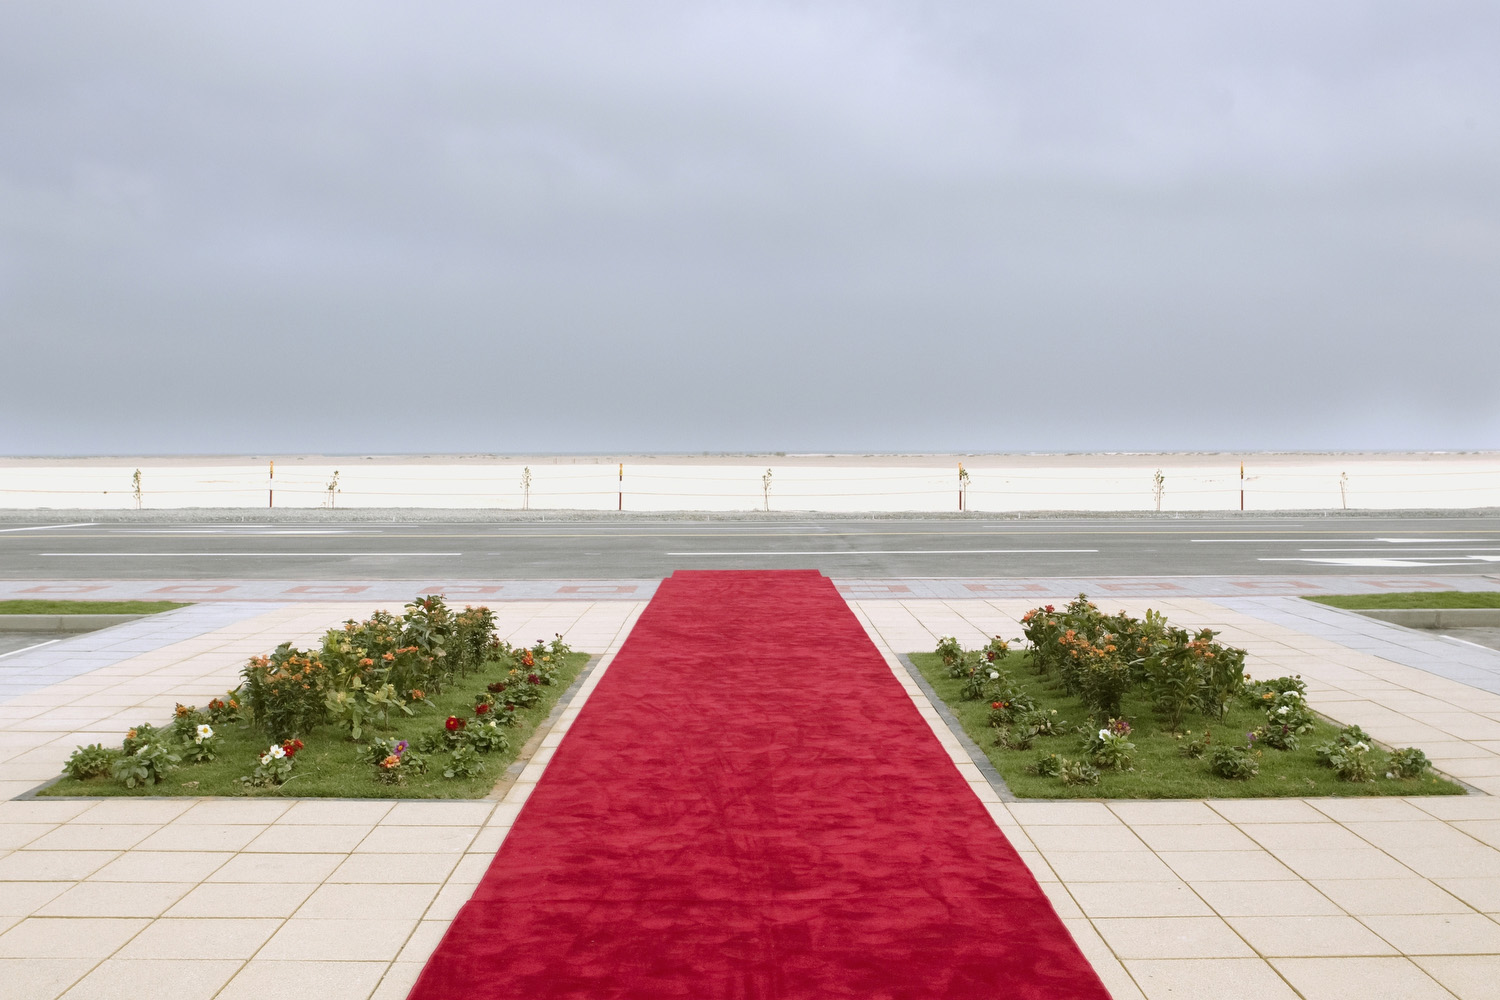 A red carpet prior to the arrival of VIPs at a groundbreaking ceremony at the proposed Nuclear Plant in Braka in the Western Region of Abu Dhabi.